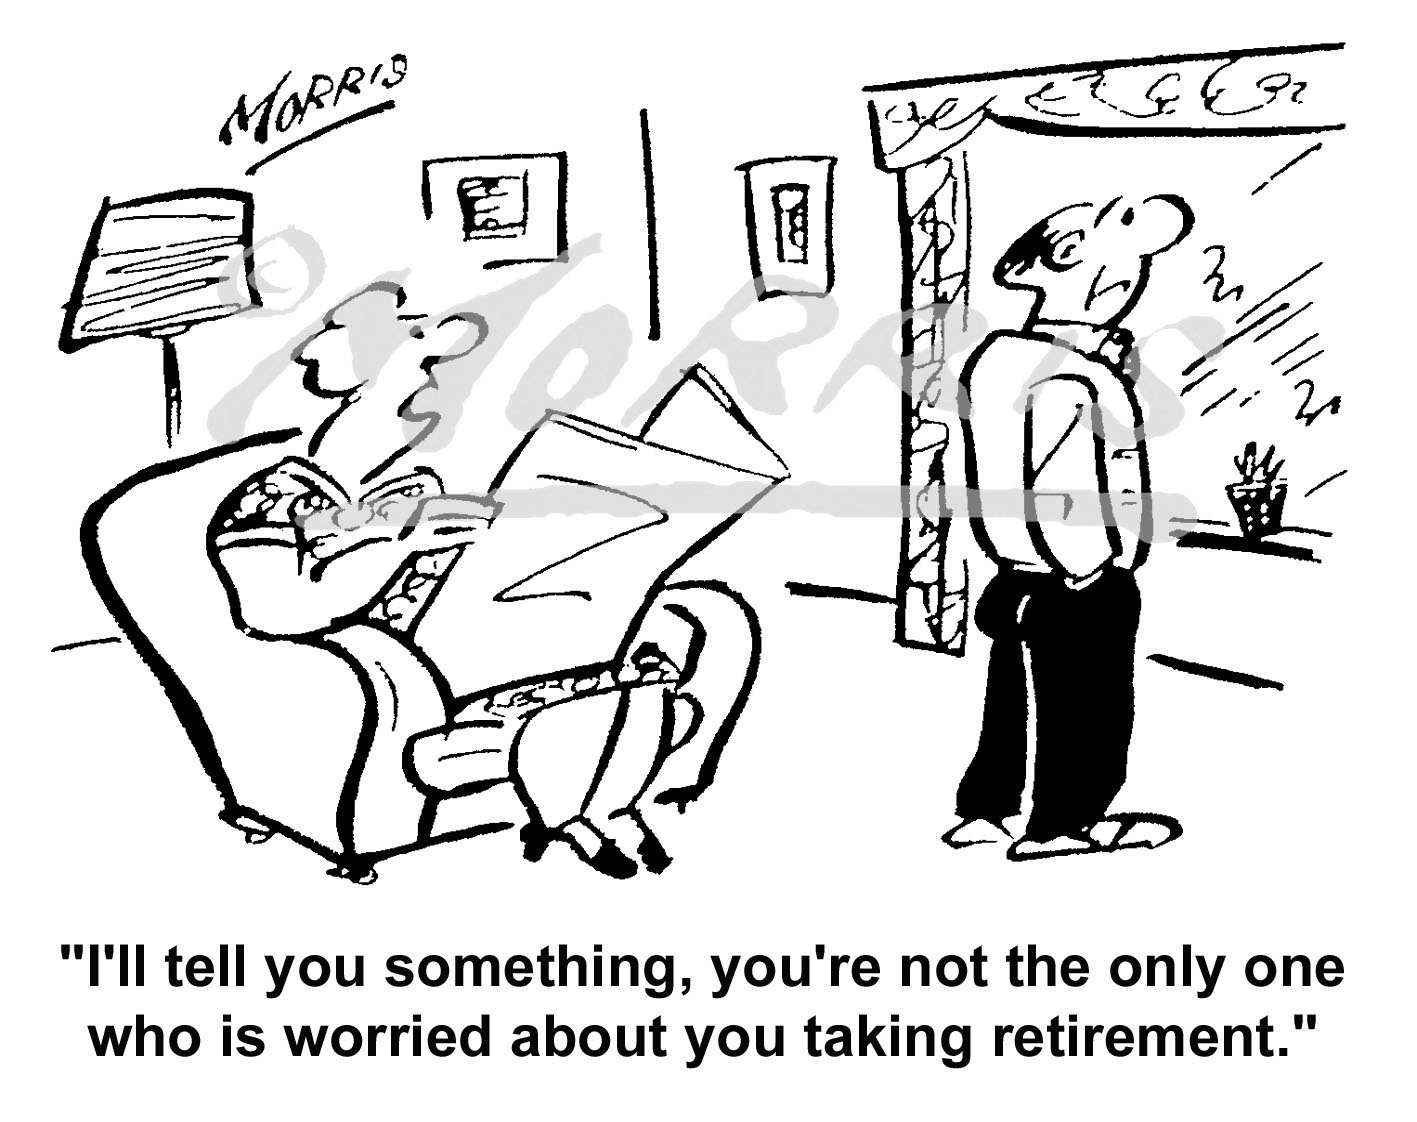 Retirement cartoon – Ref: 4883bw